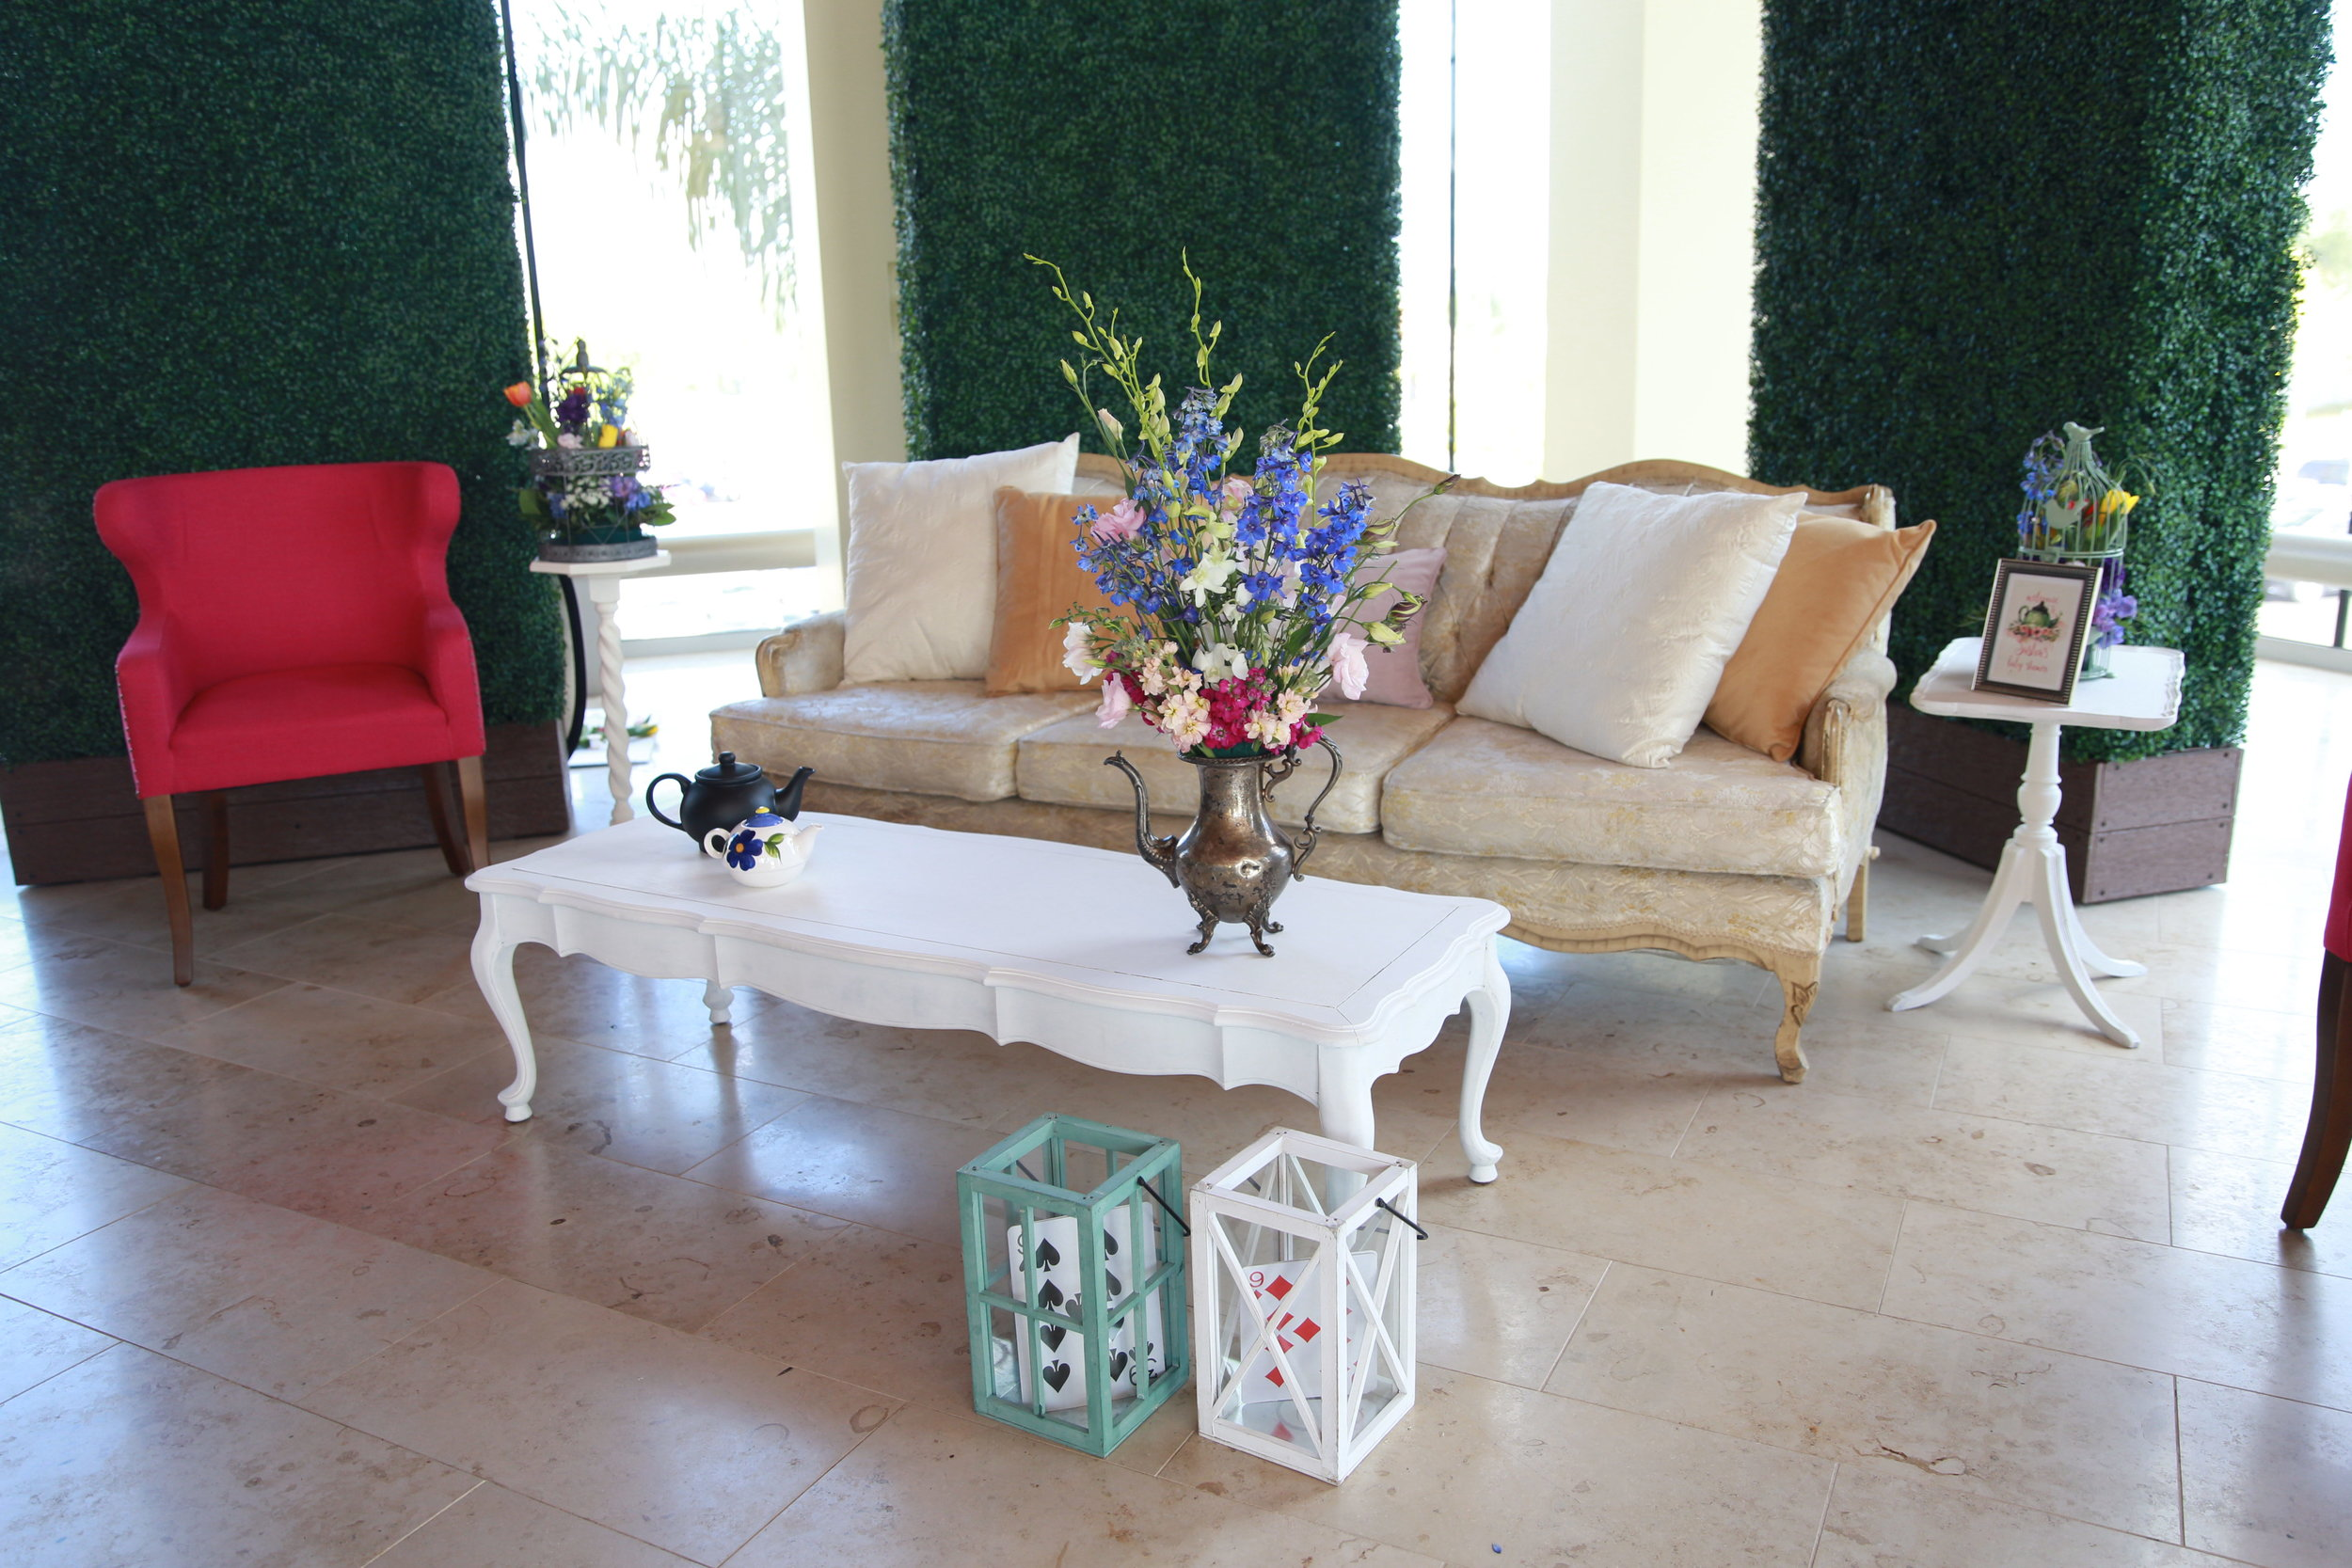 San Diego Event Planning | Events By Lift | Lounge Area